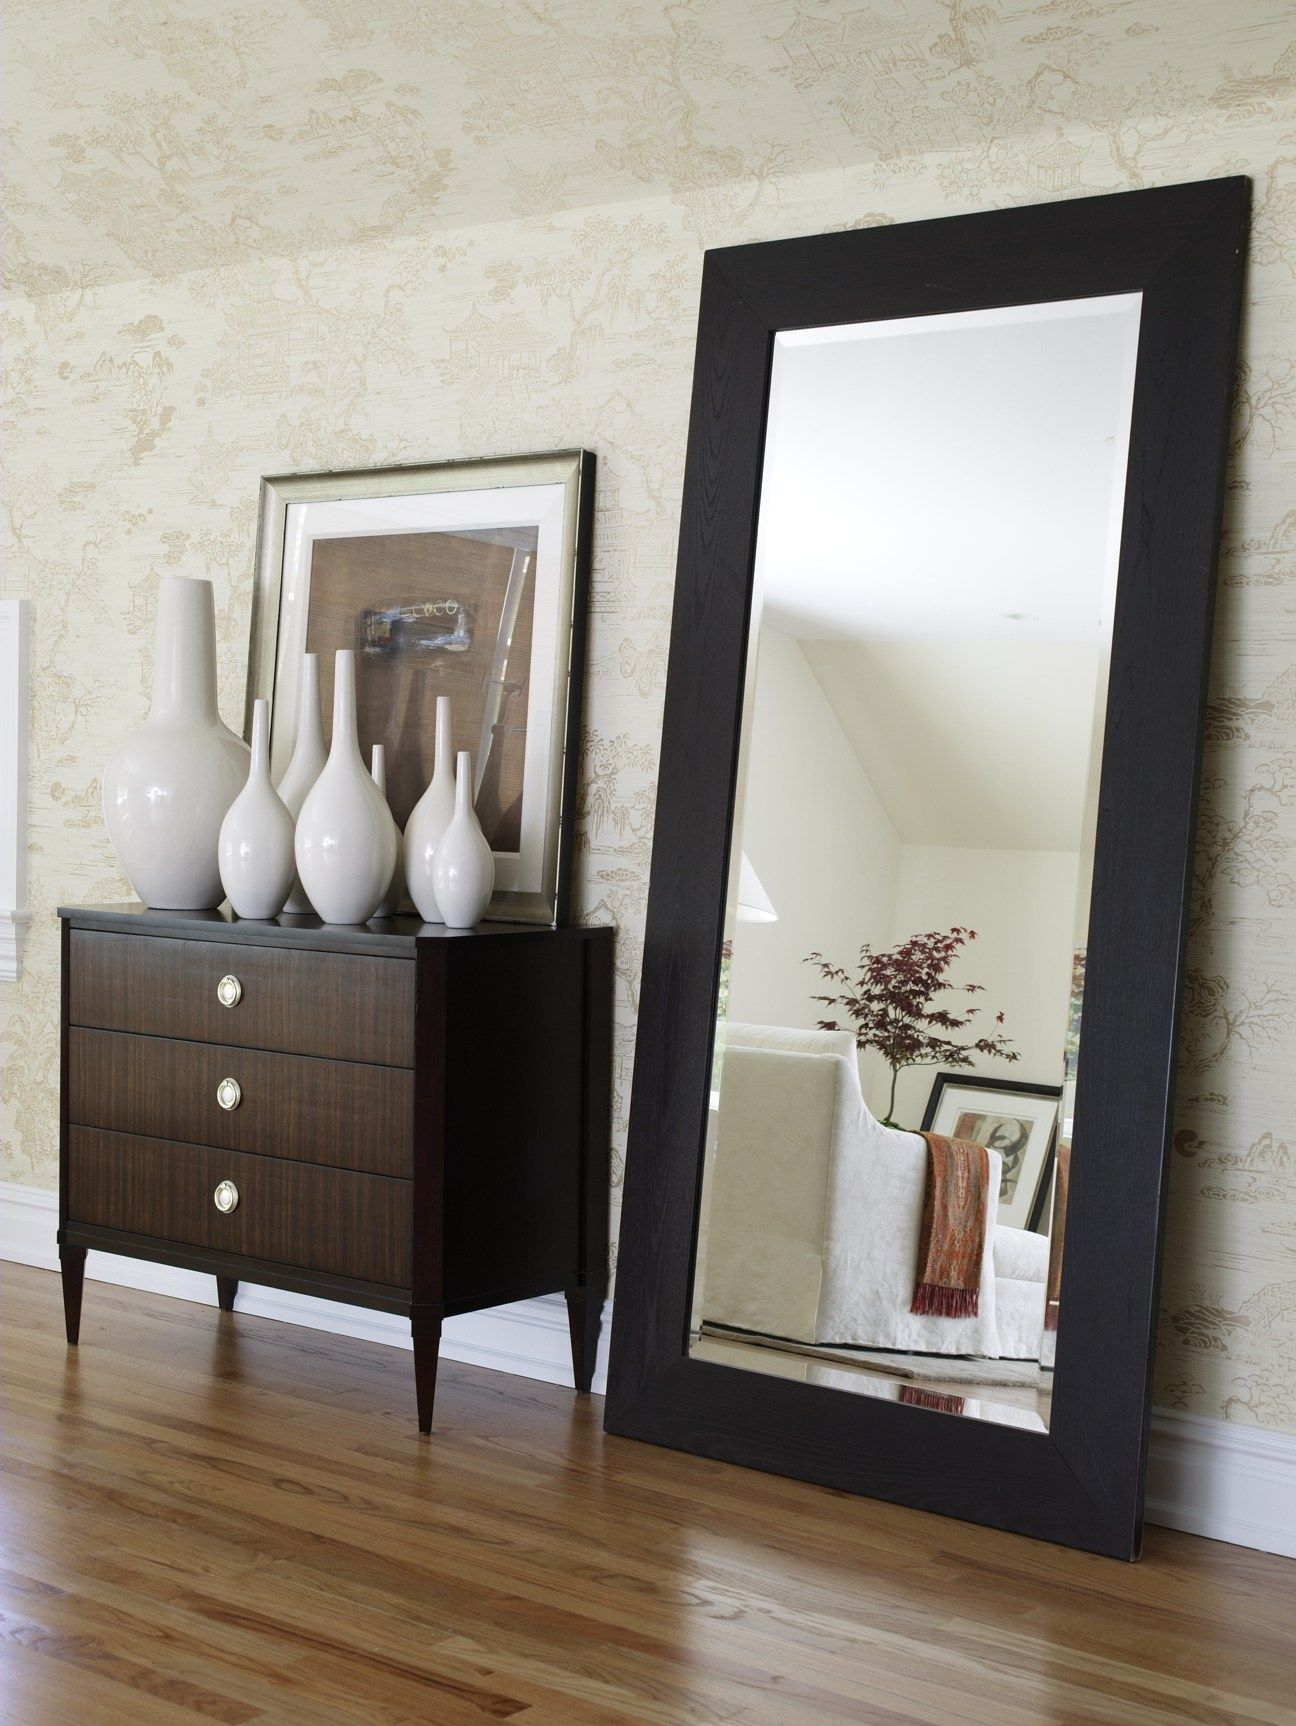 A Full Length Mirror Lets Your Guests Take That Last Look